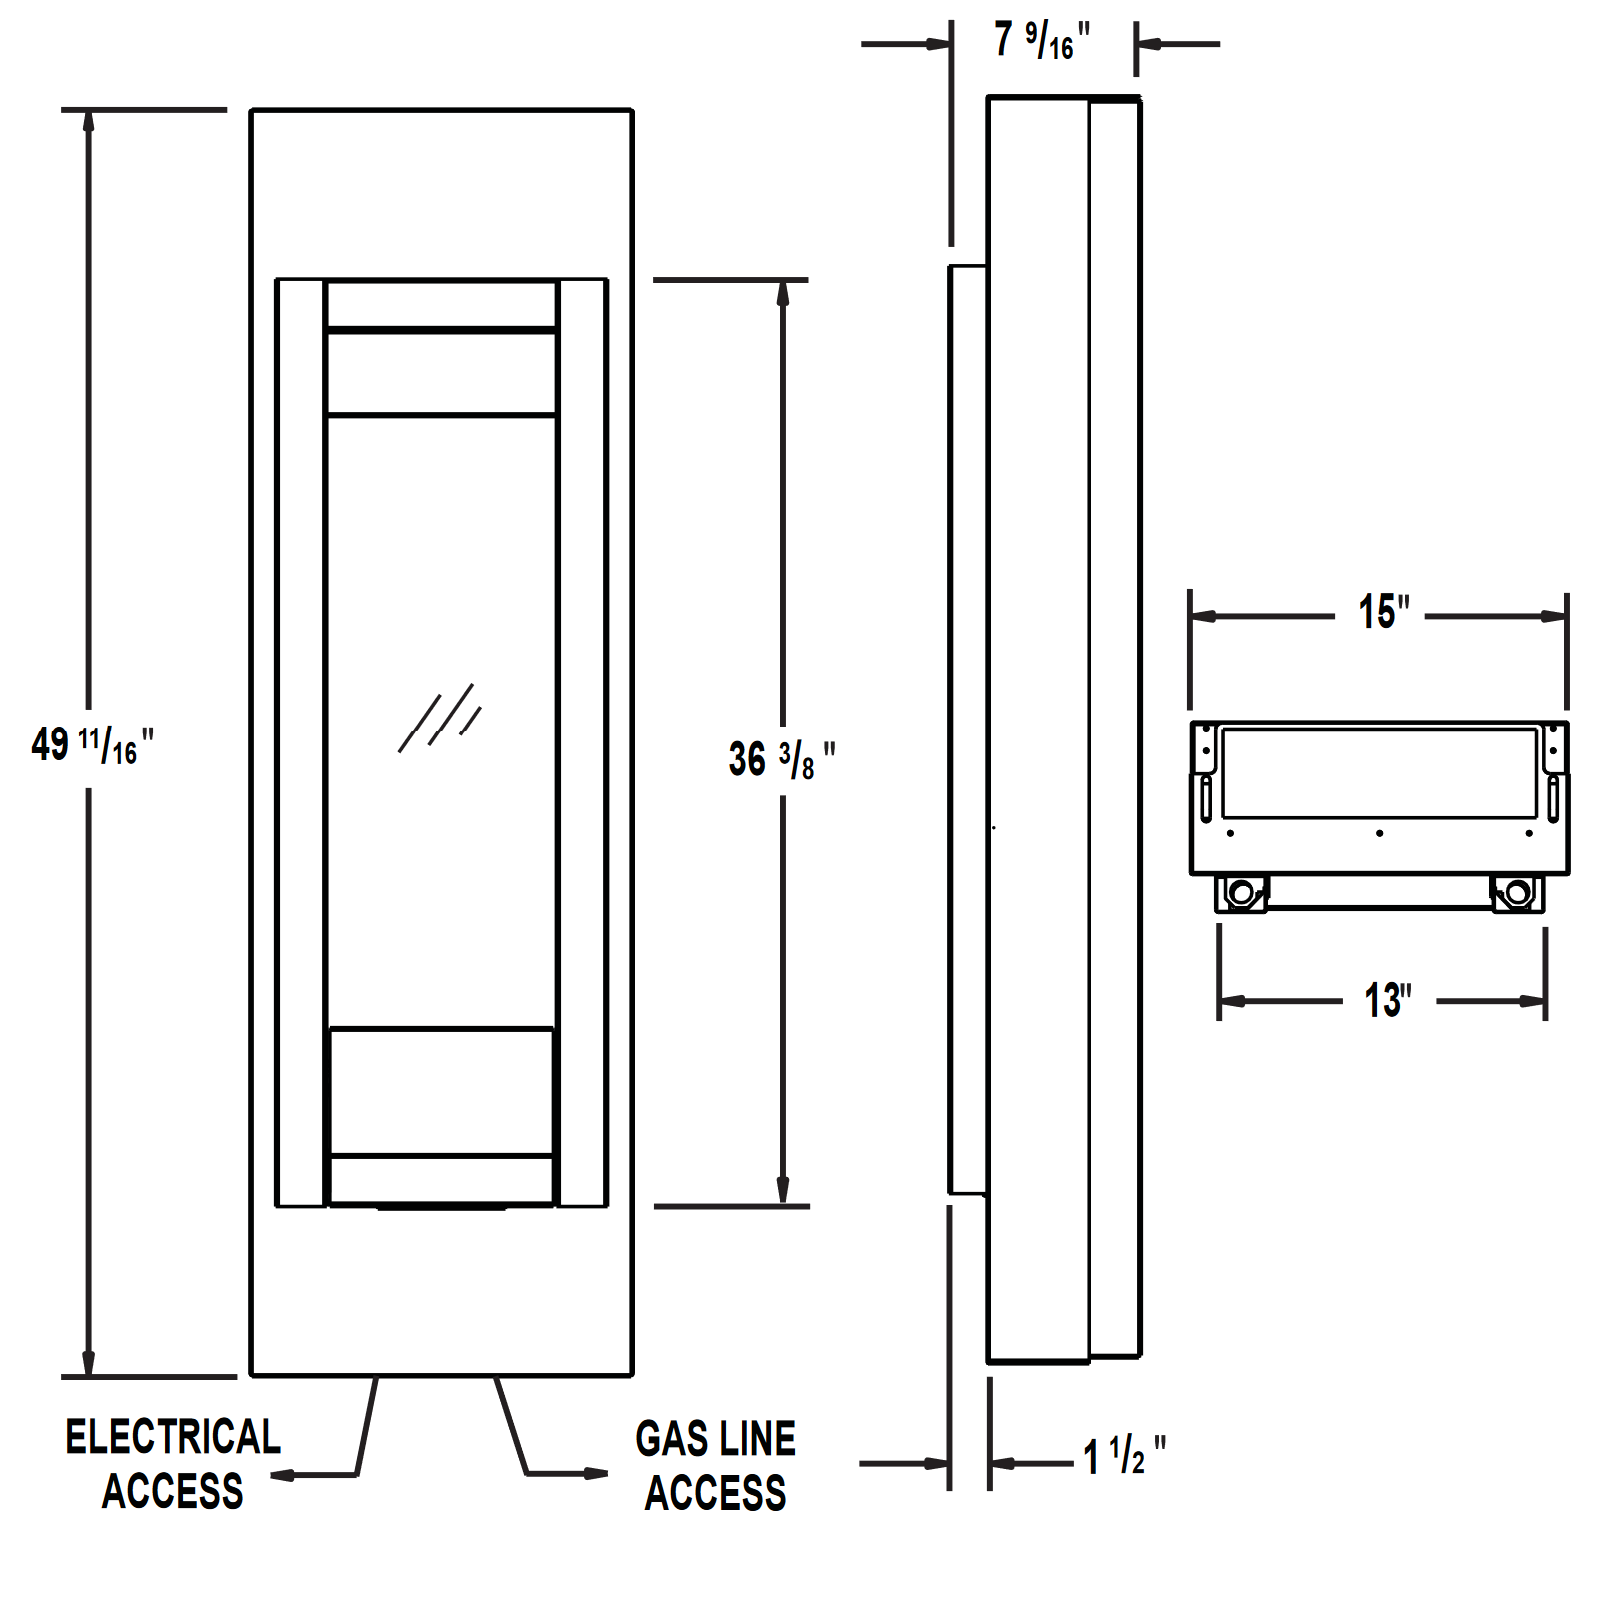 GVFT8N Technical Drawing 1